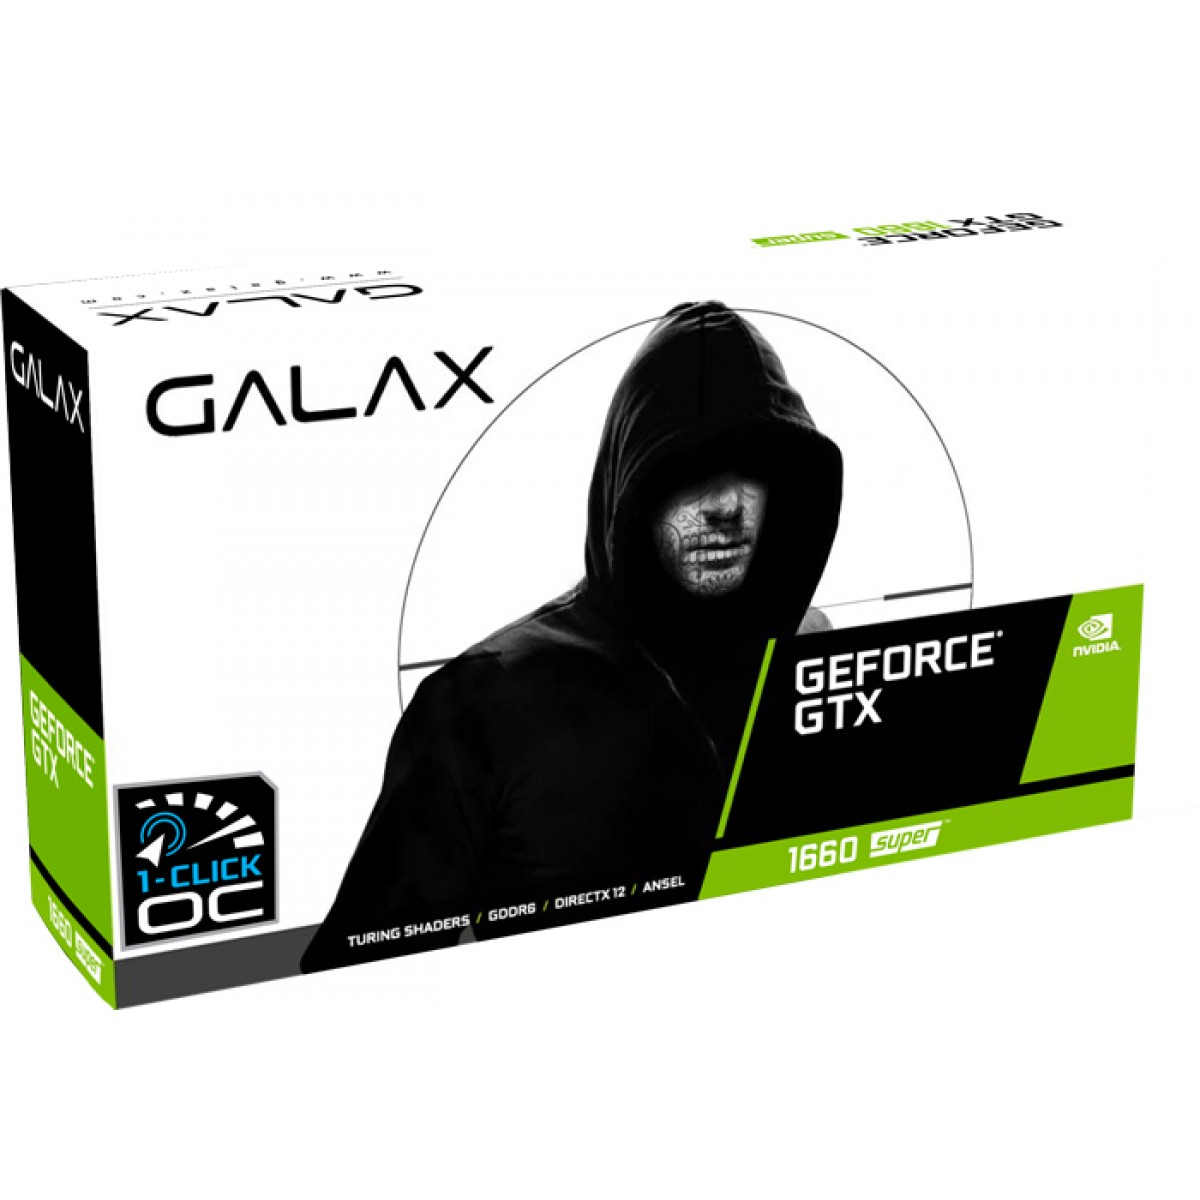 Placa de Vídeo Galax GeForce GTX 1660 Super EX (1-Click OC) Dual, 6GB GDDR6, 192Bit, White, 60SRL7DS04WS